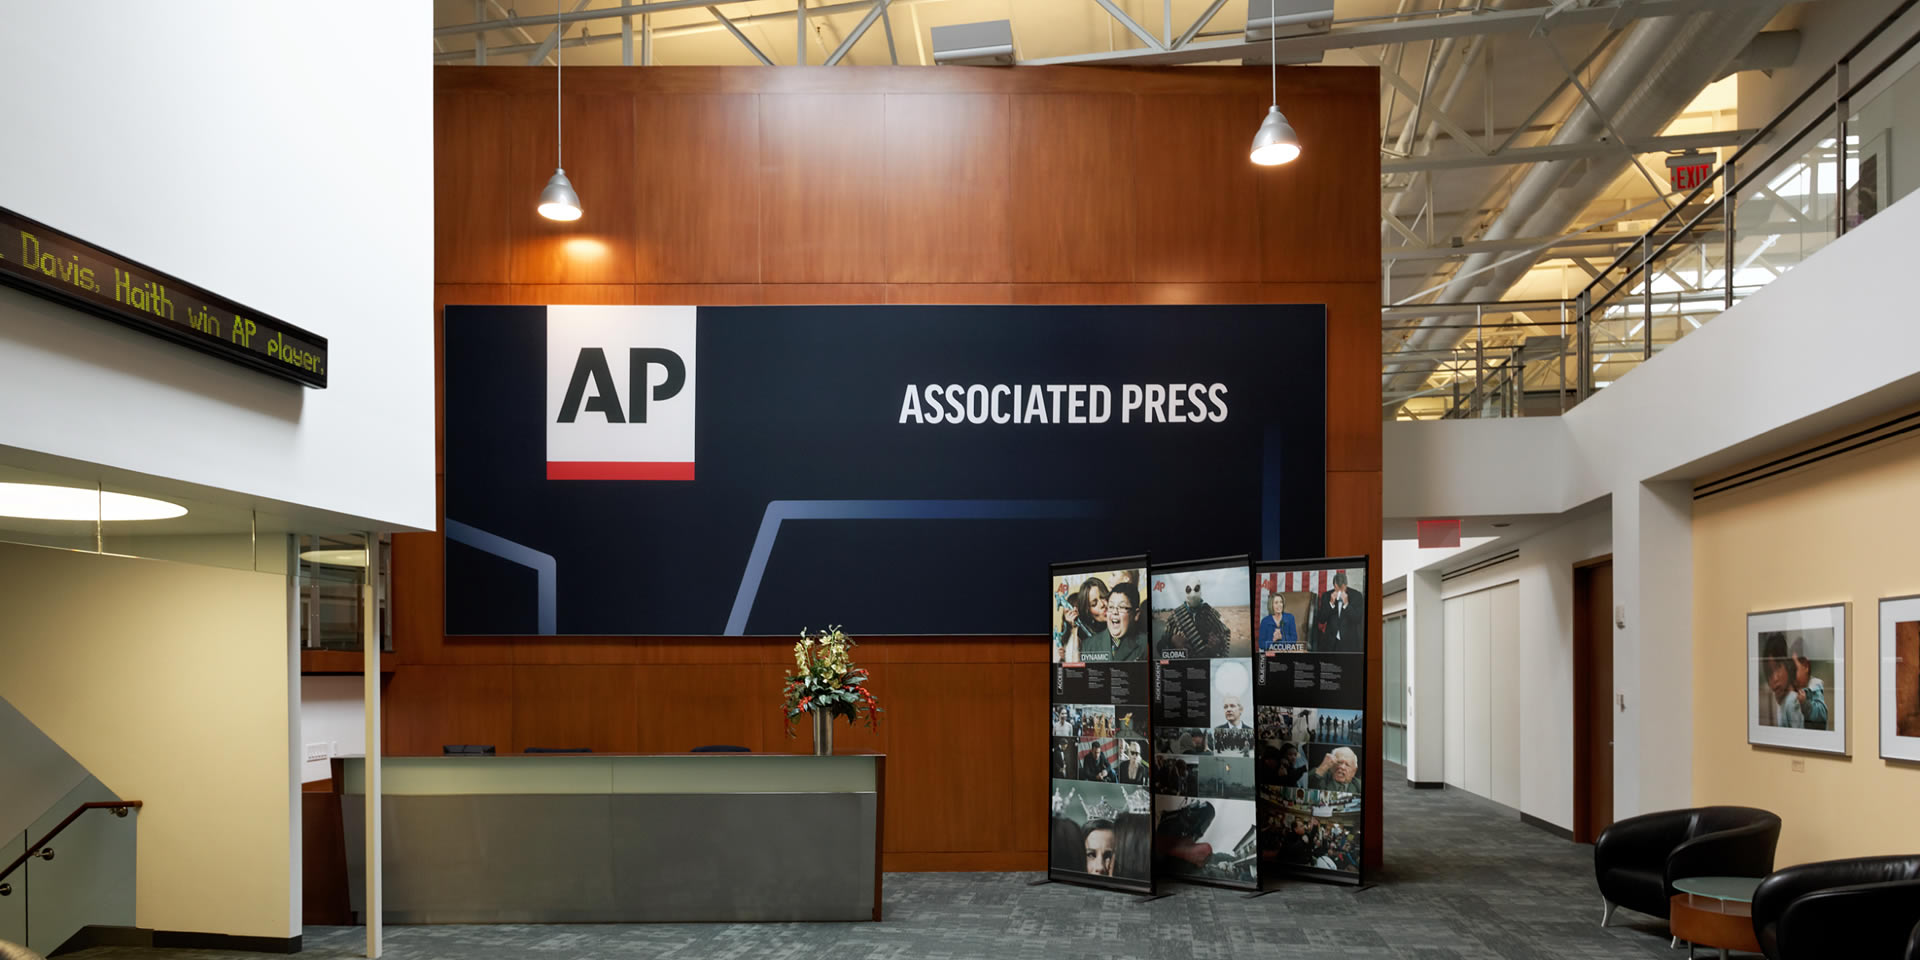 ap associated press sign